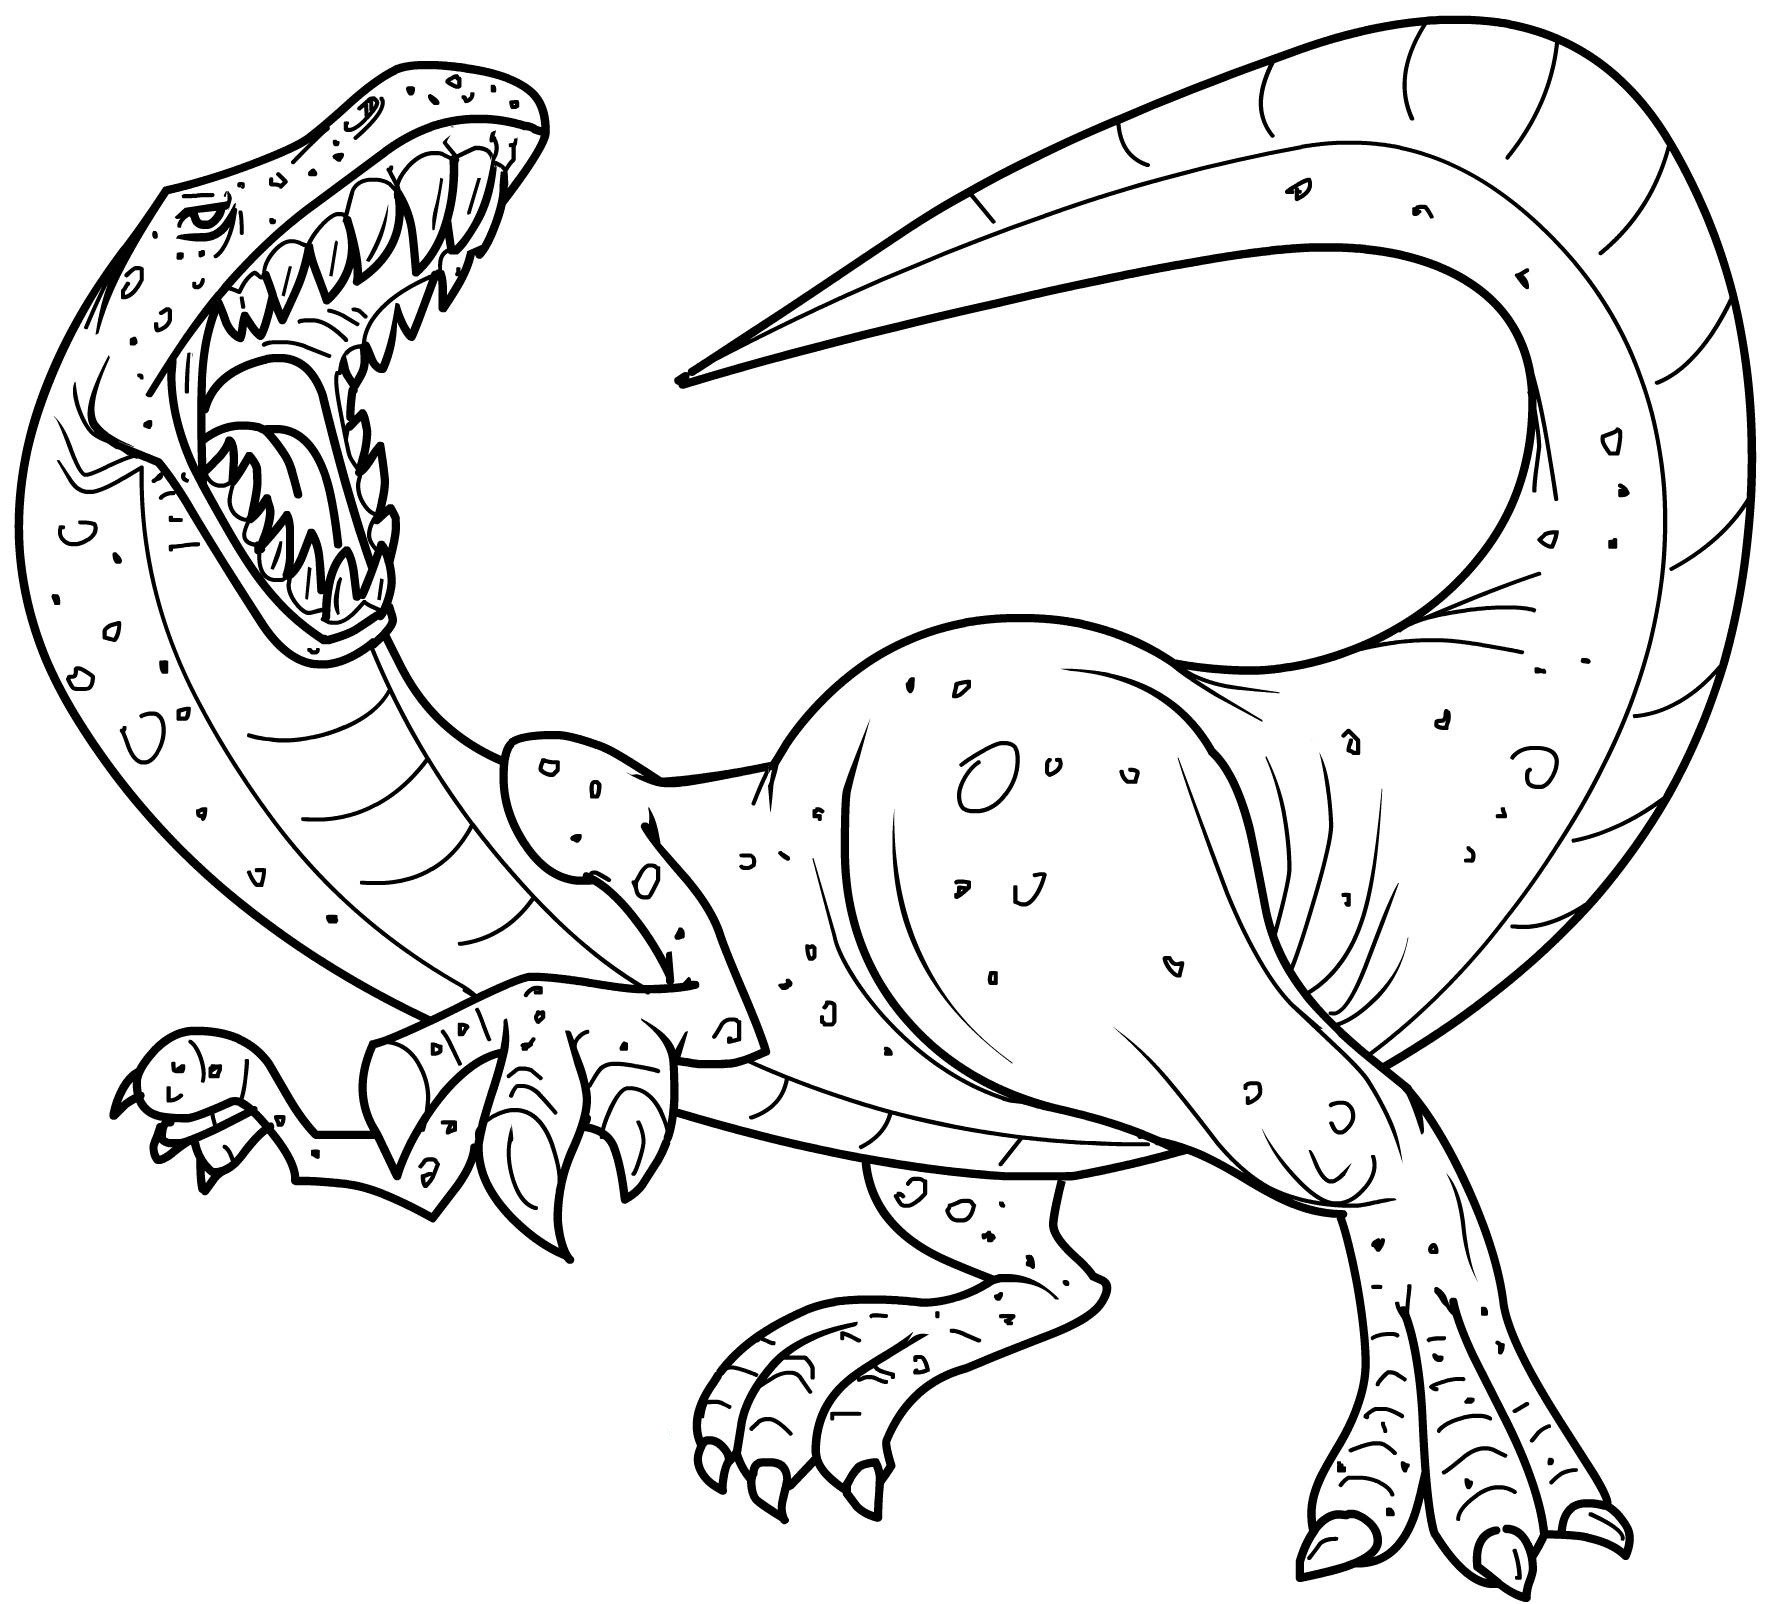 dinosaur pictures to color dinosaur colouring pages in the playroom dinosaur pictures color to